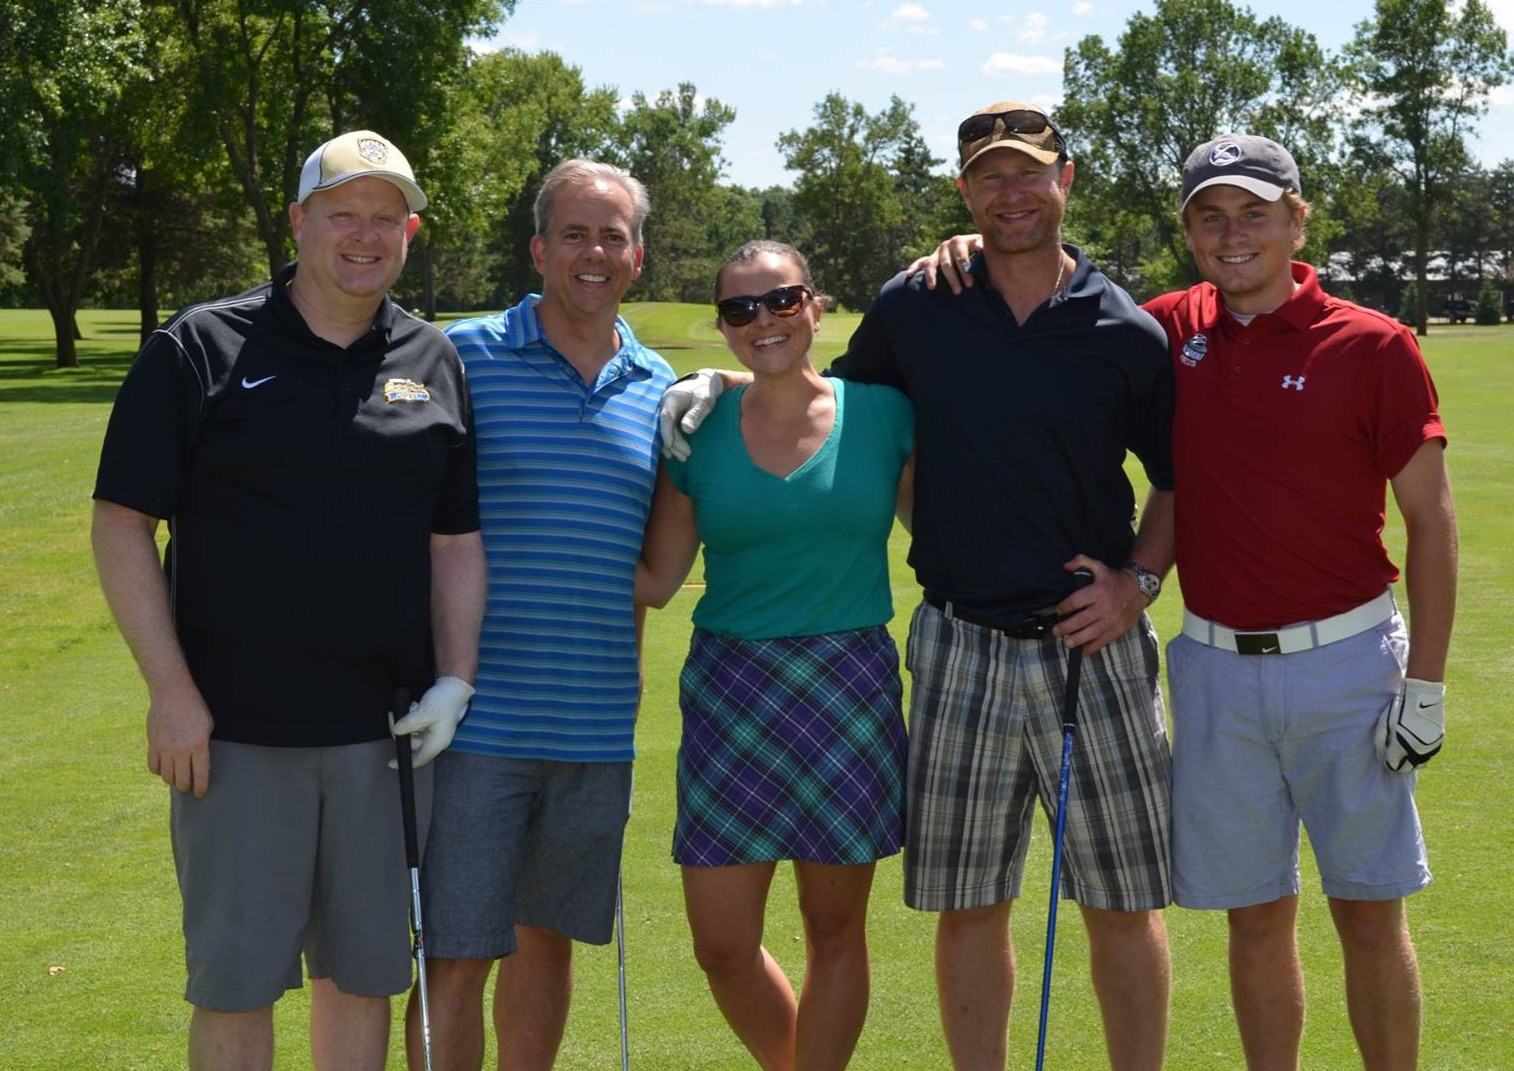 golf-tourney-group.jpg